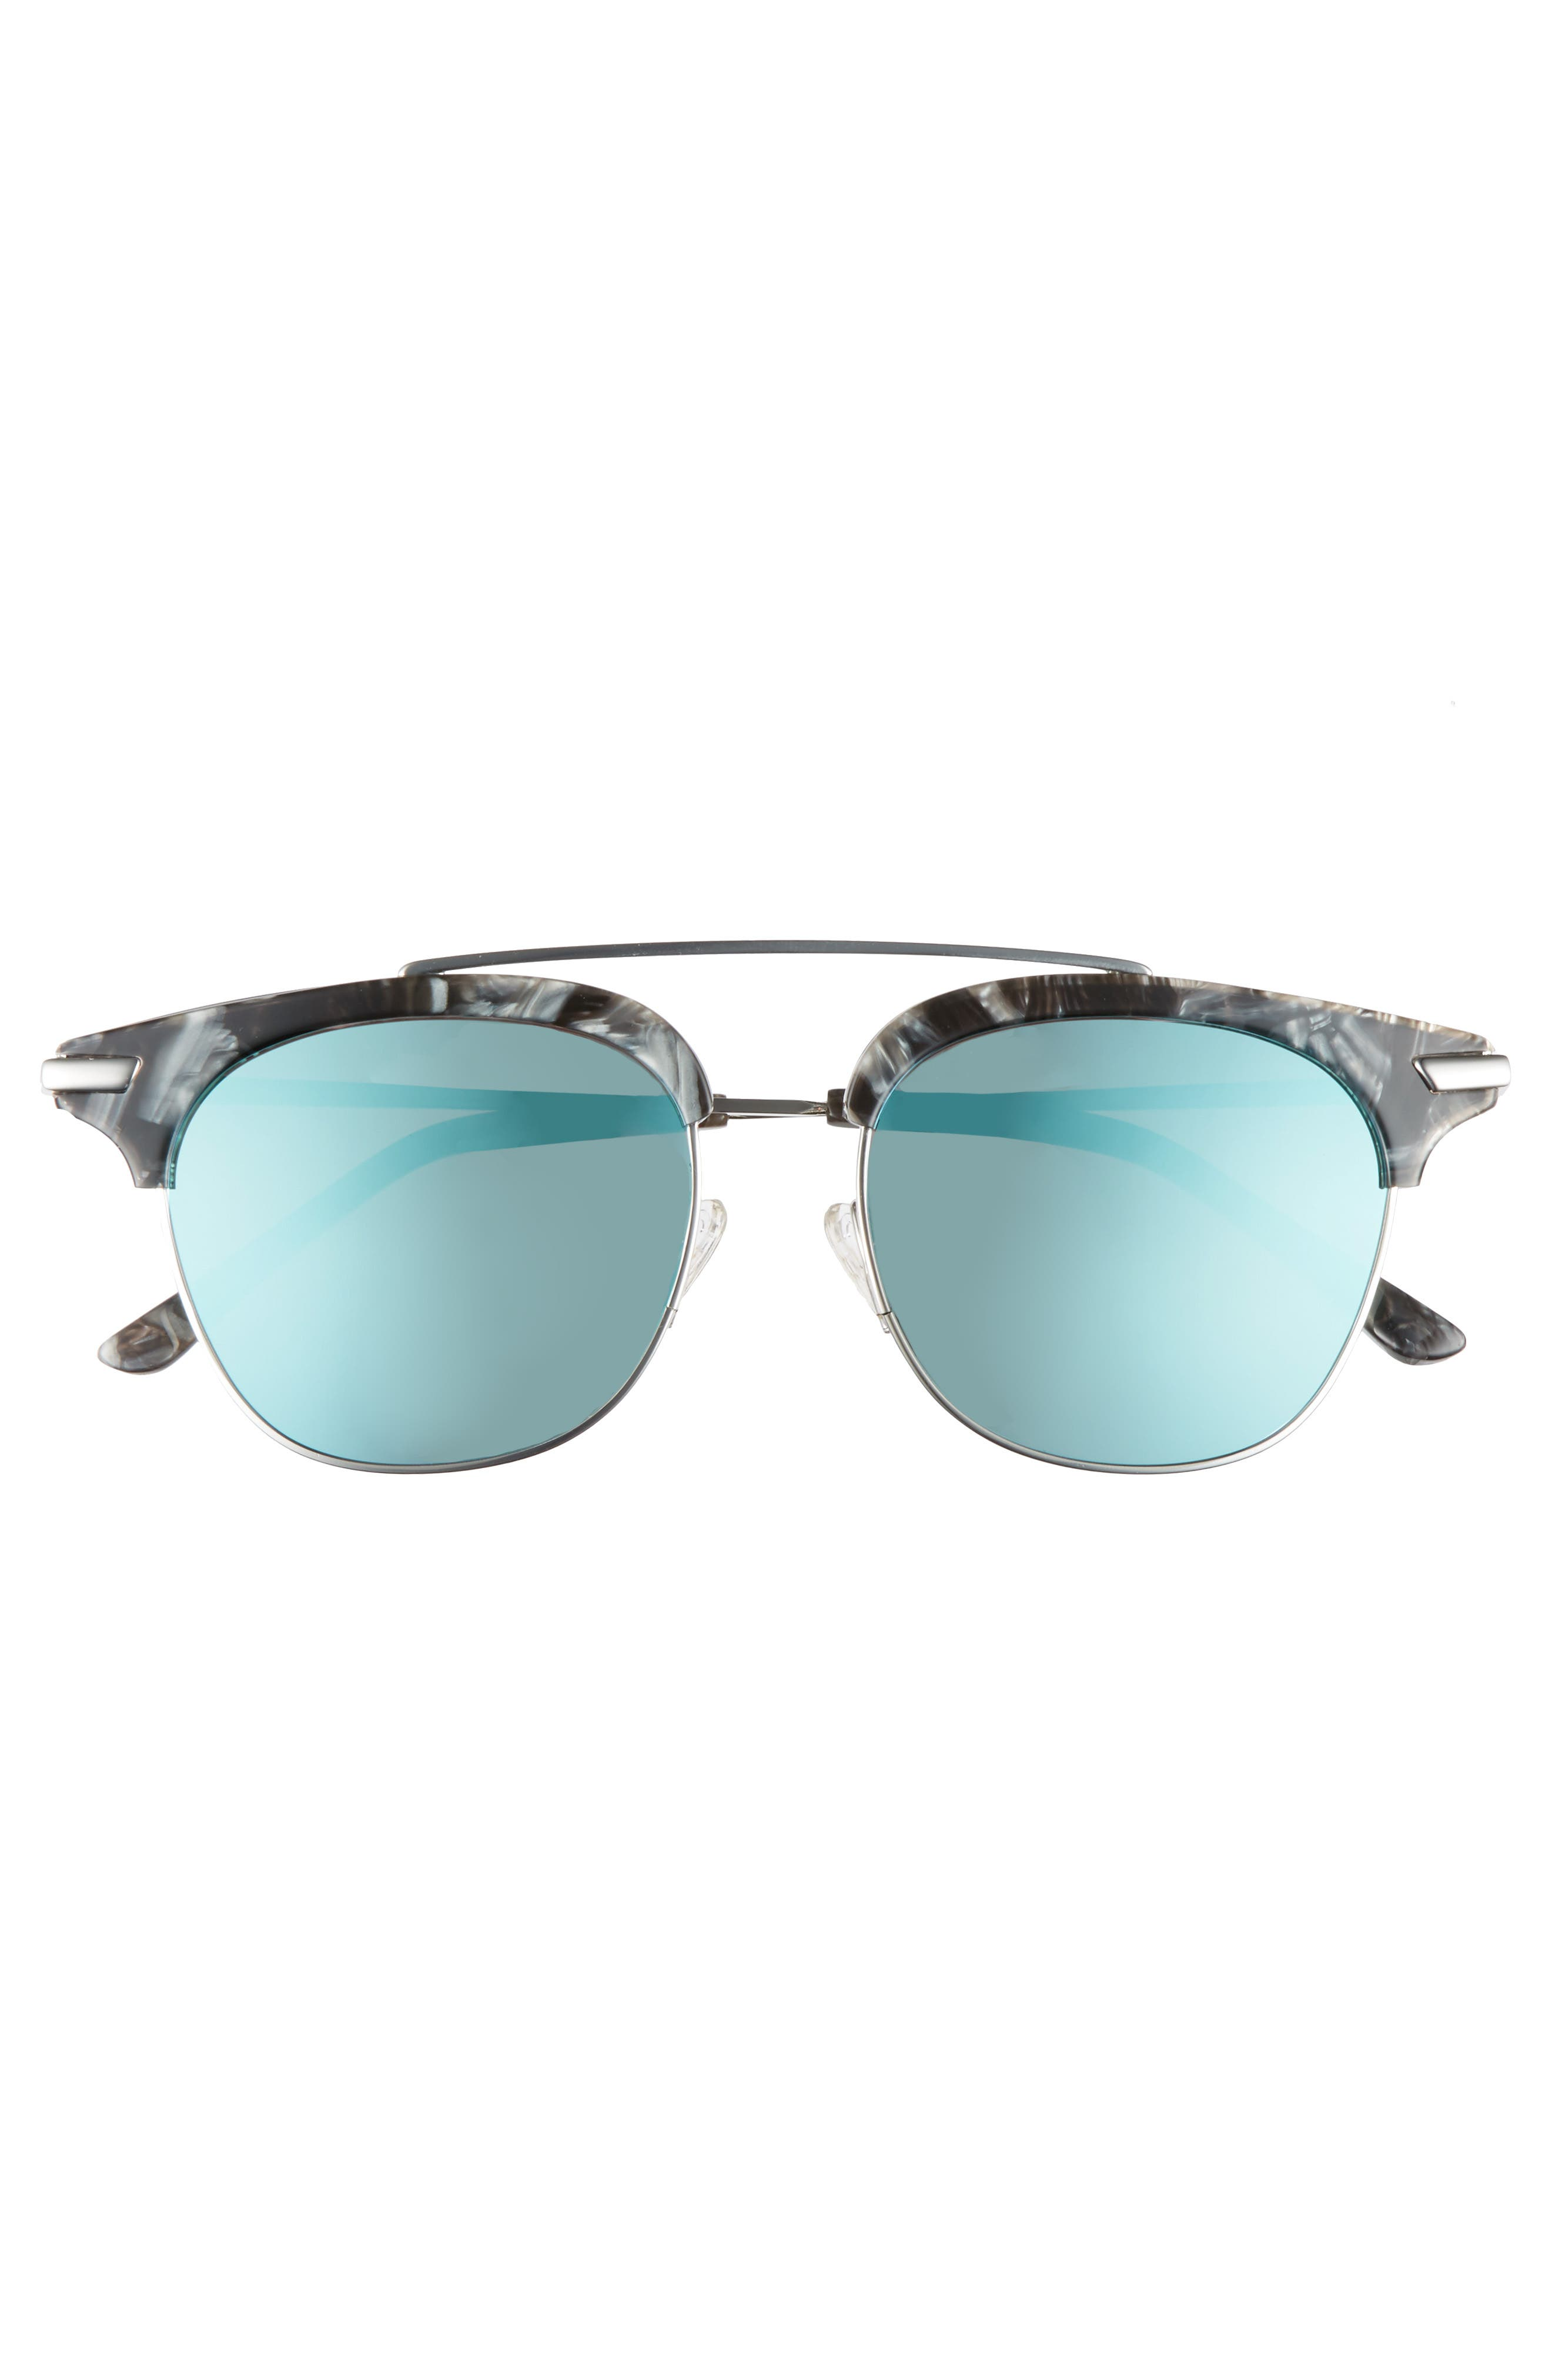 Alternate Image 3  - Bonnie Clyde Midway 51mm Polarized Brow Bar Sunglasses